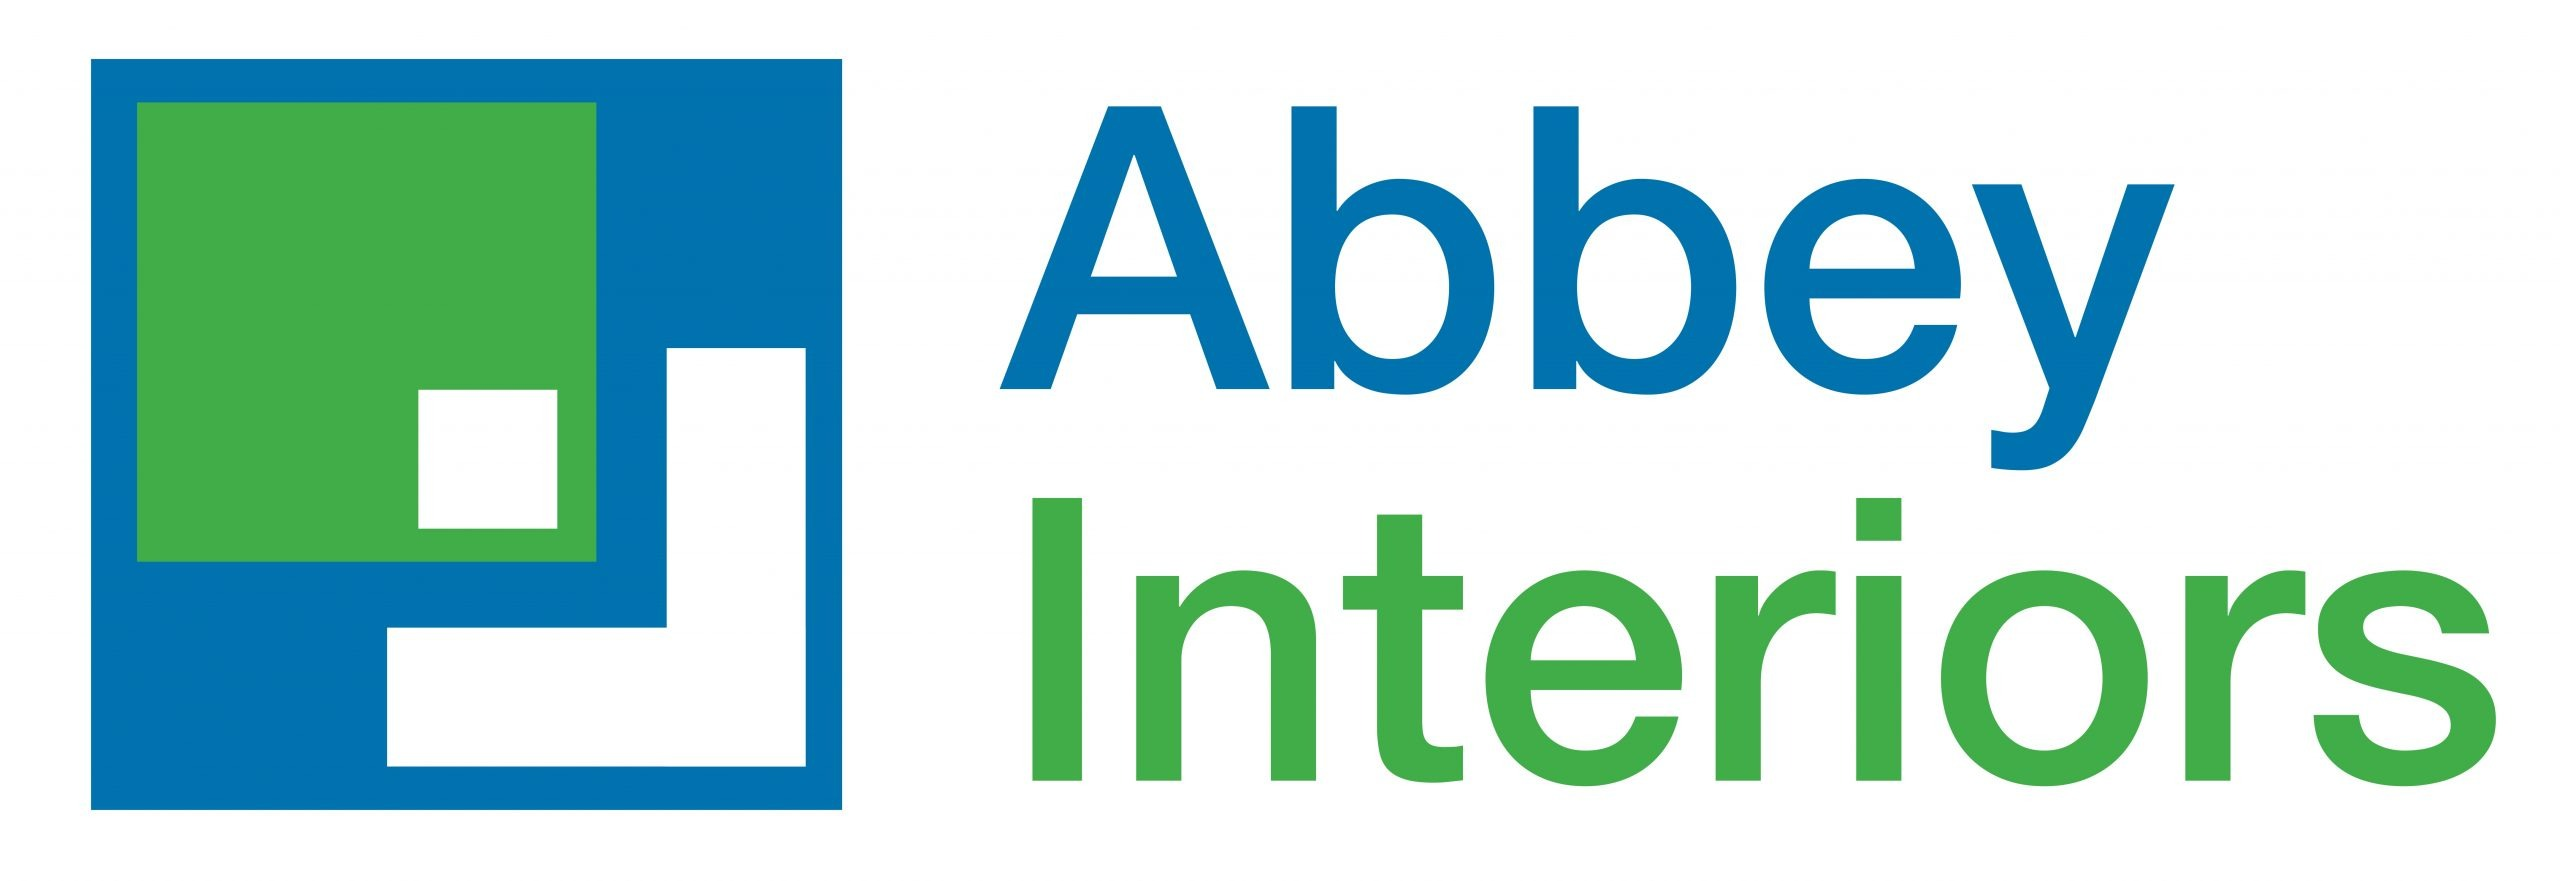 Abbey Interiors Kilkenny